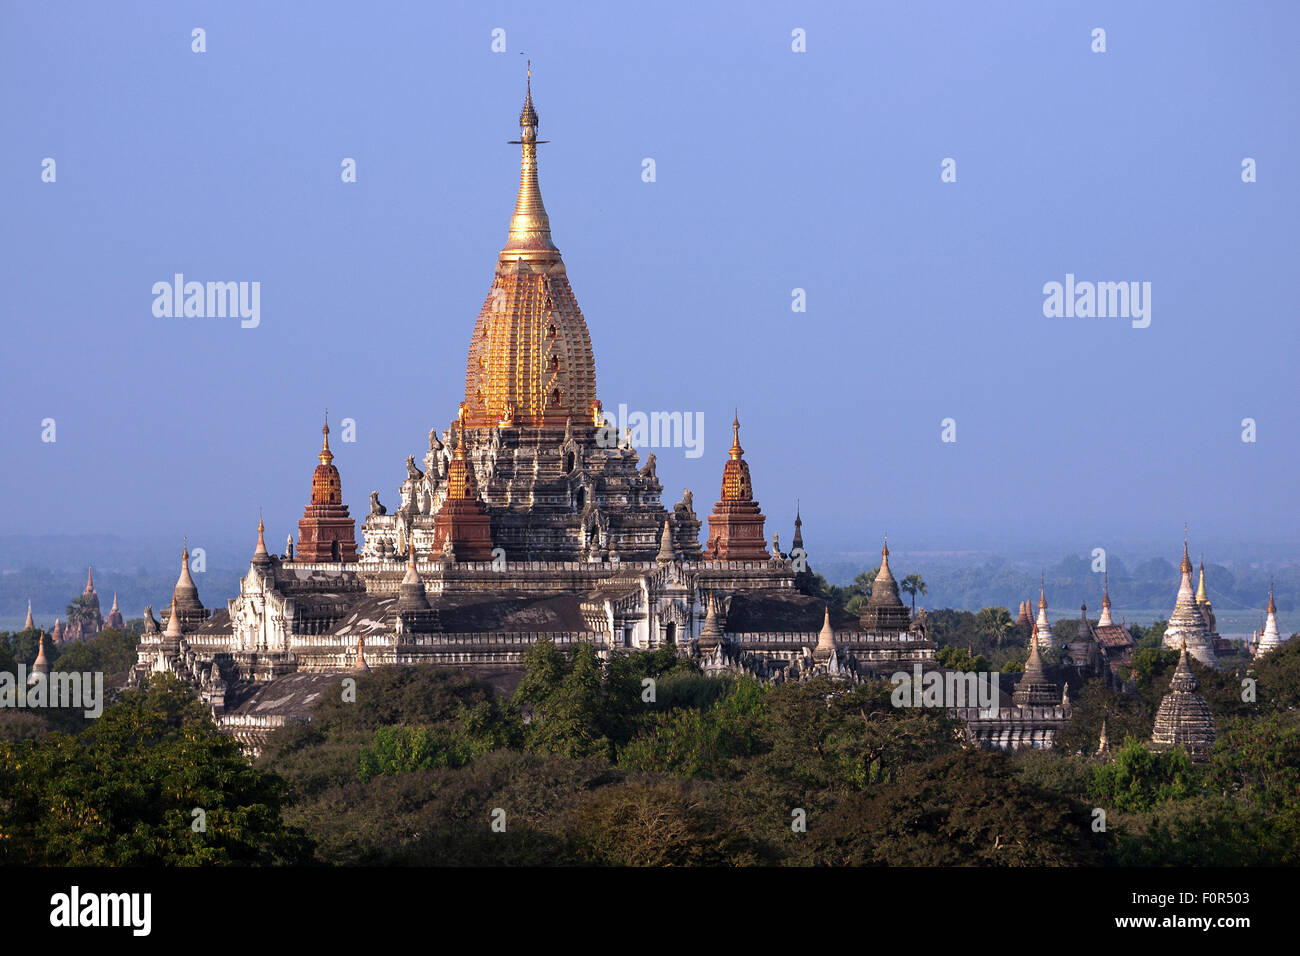 Views of the Ananda Temple, pagodas field, Bagan, Mandalay Division, Myanmar - Stock Image